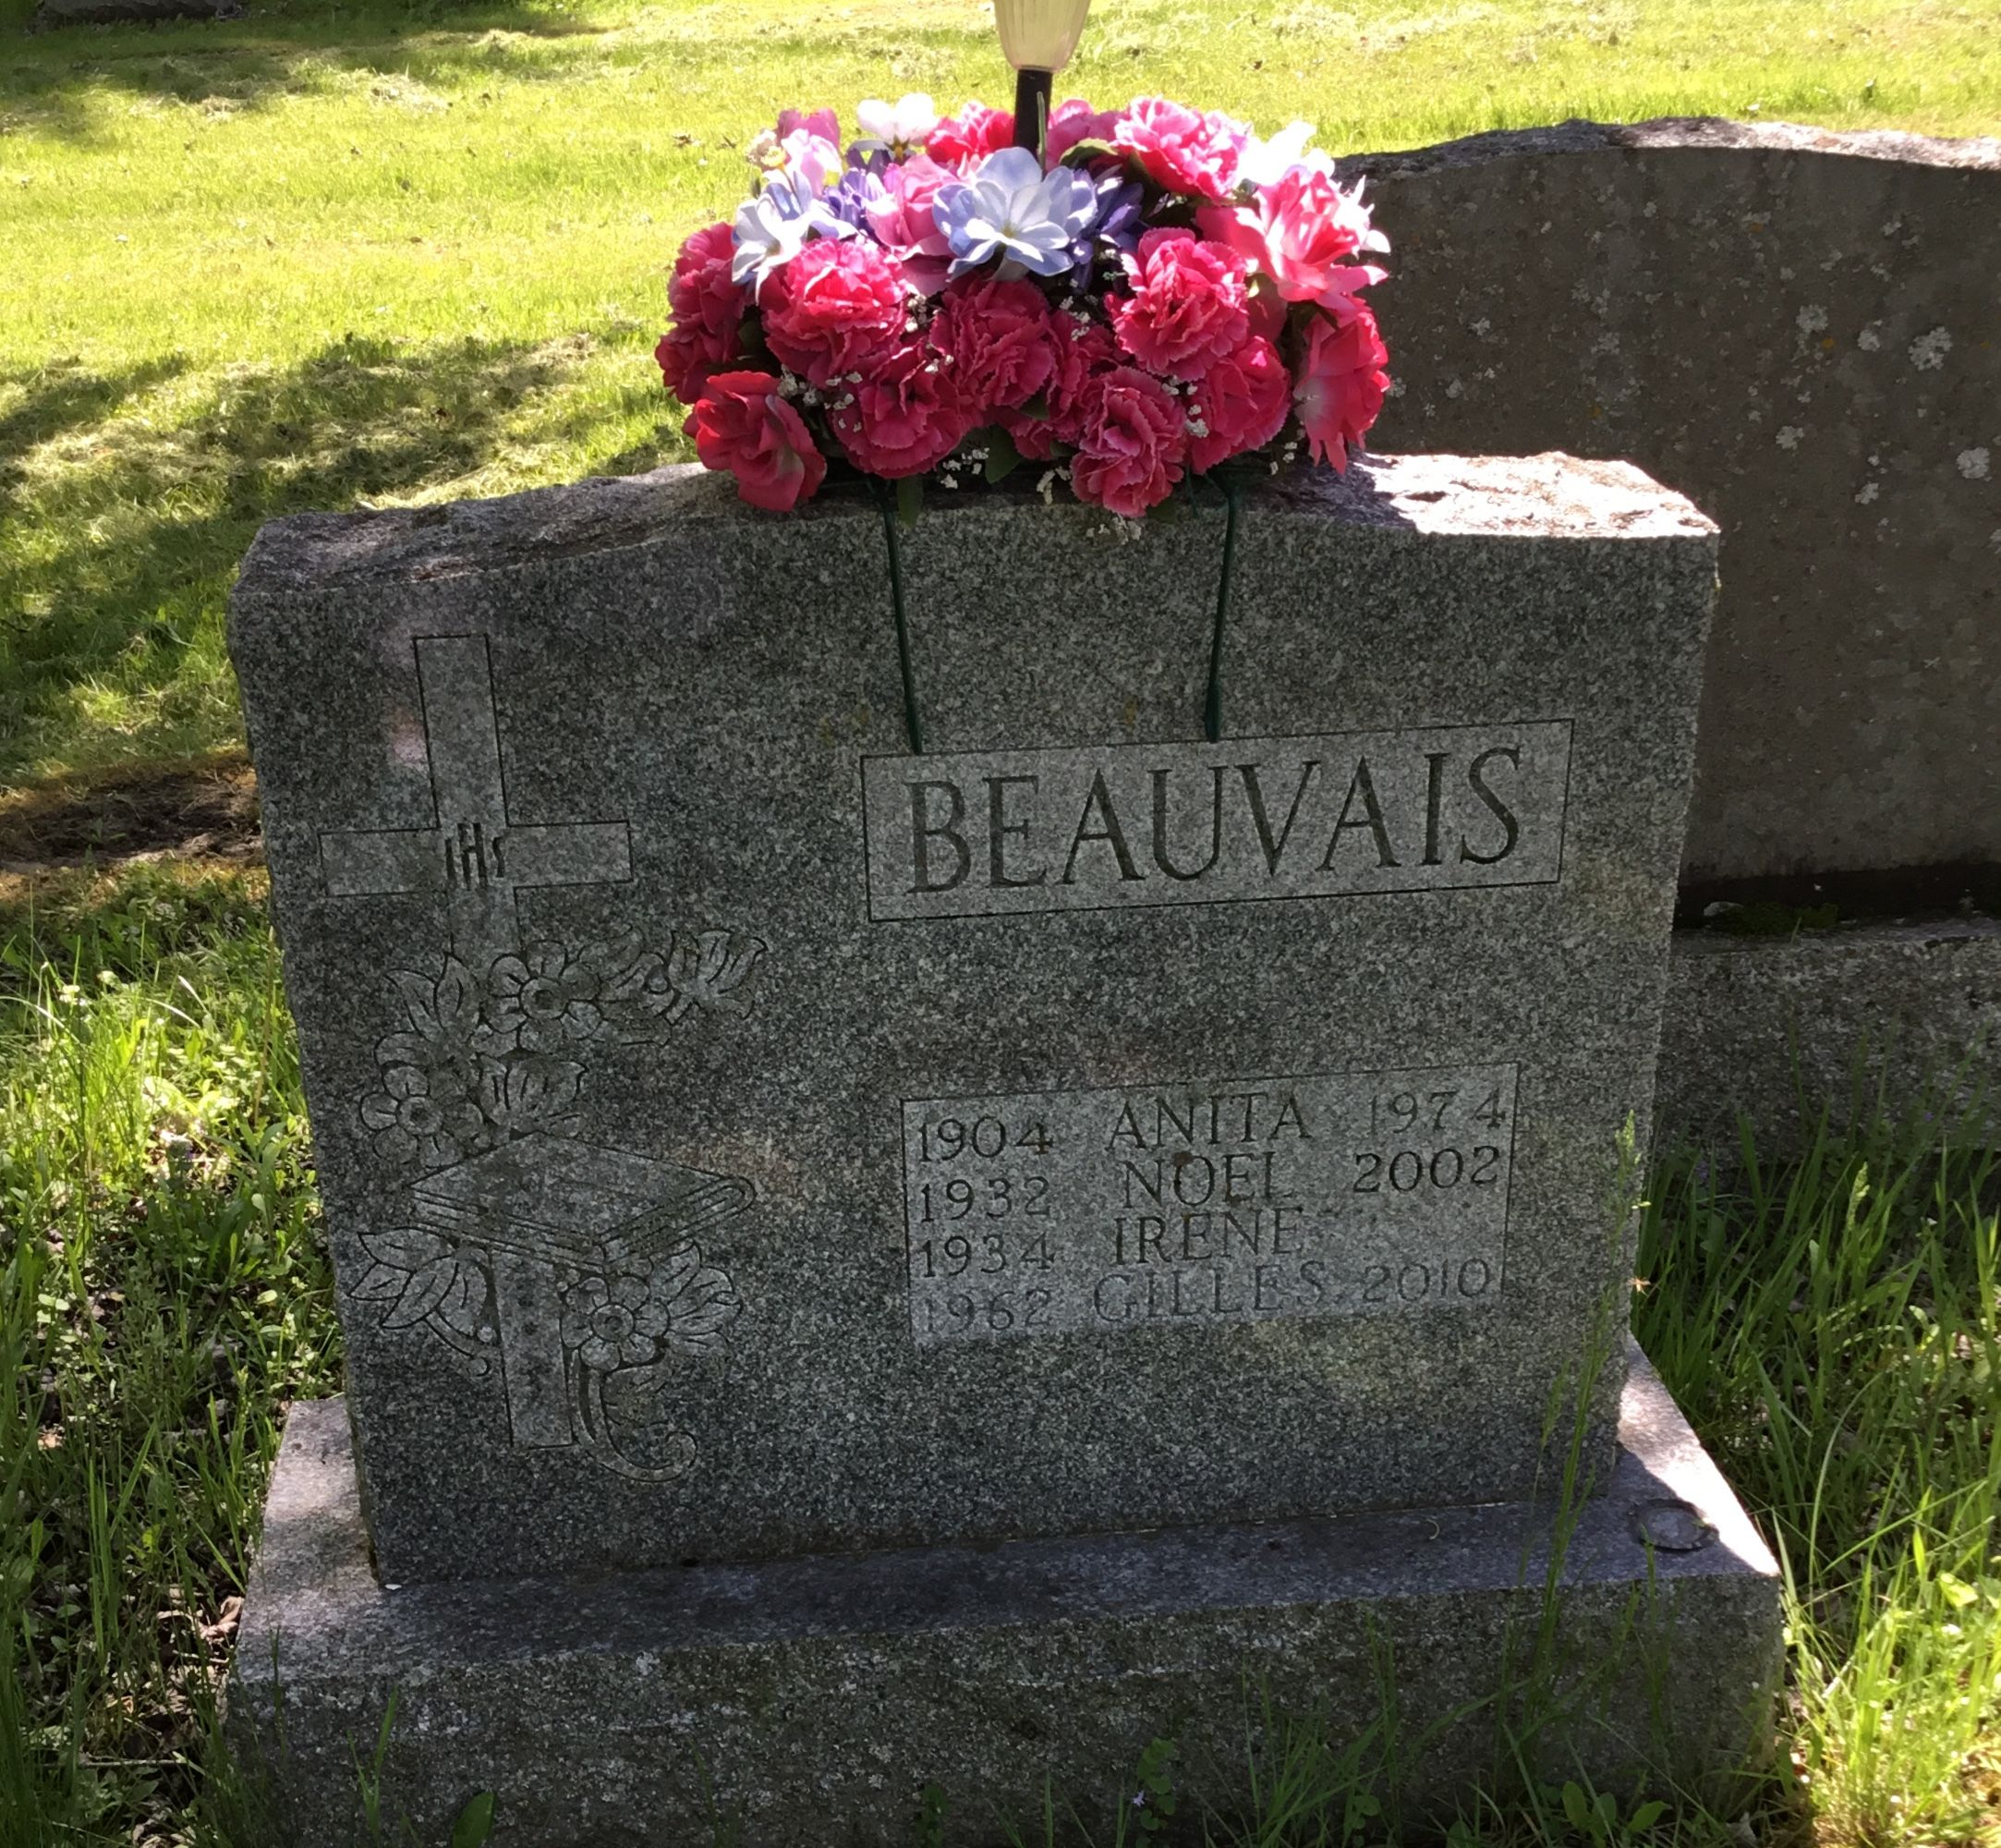 noel 2018 beauvais Anita Beauvais (1904 1974)   Find A Grave Memorial noel 2018 beauvais